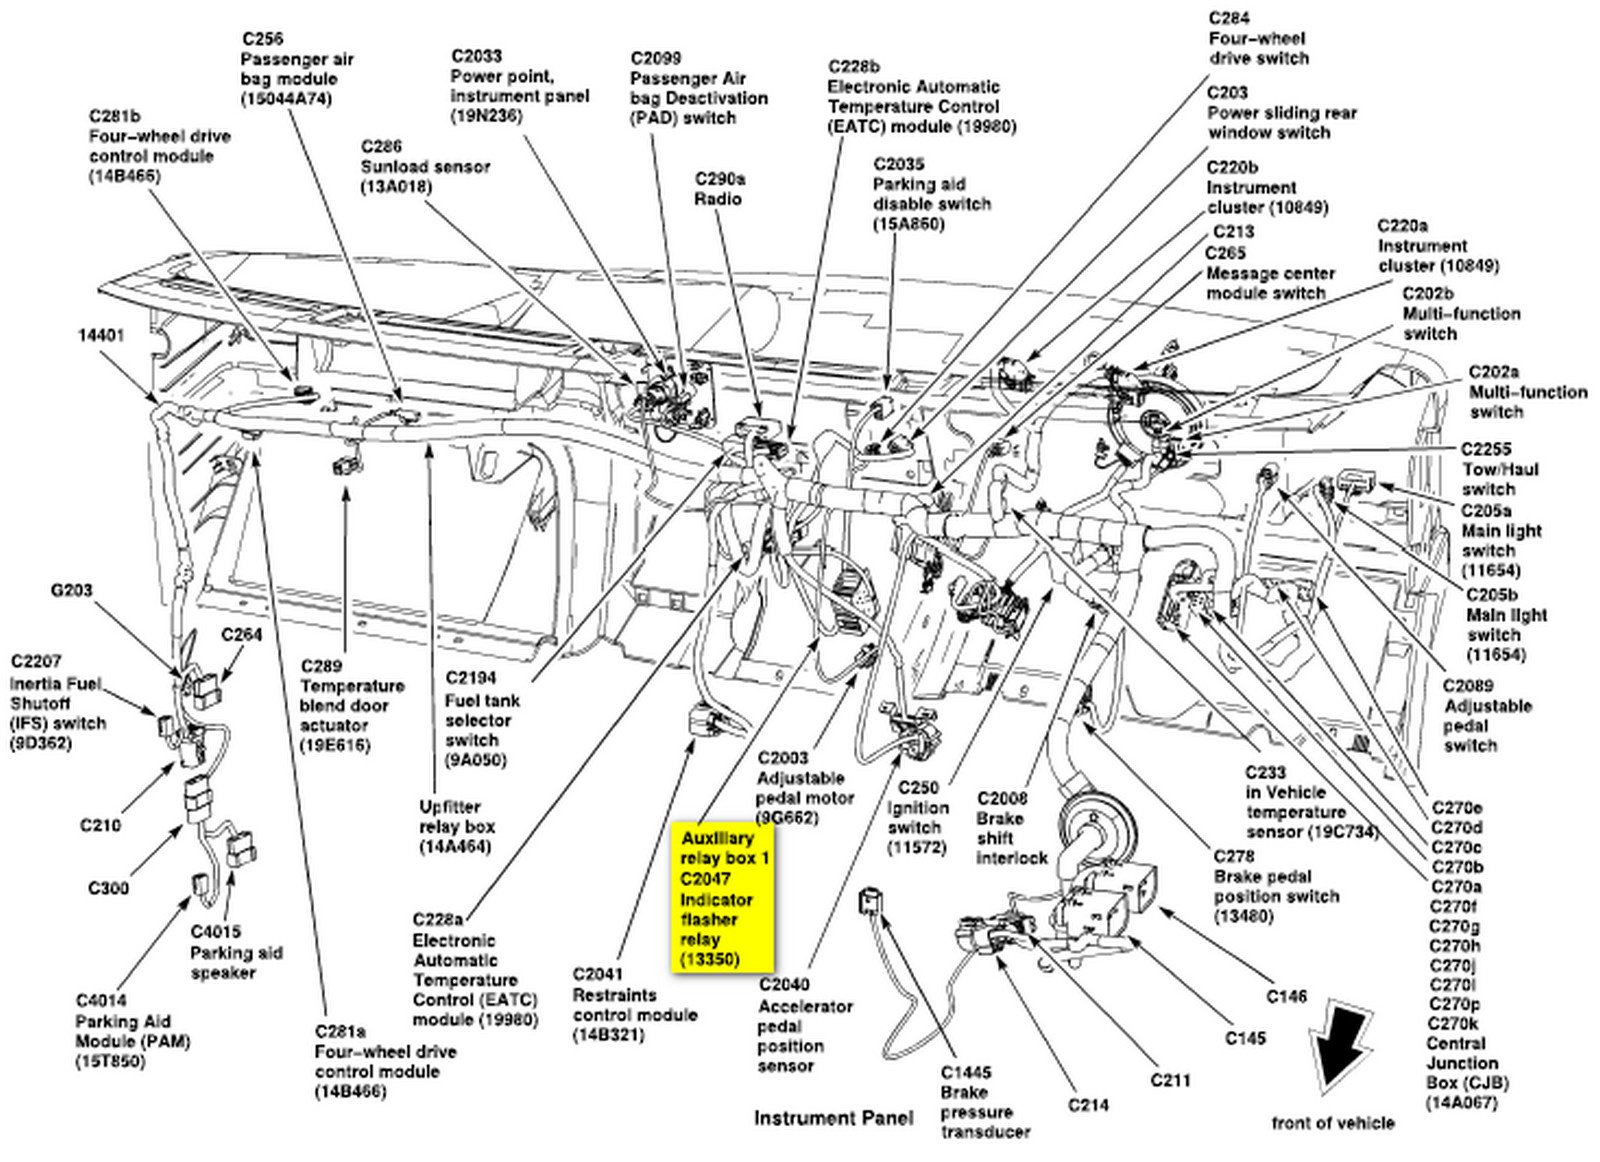 Ford Turn Signal Flasher Diagram Wiring Diagram Frankmotors Es